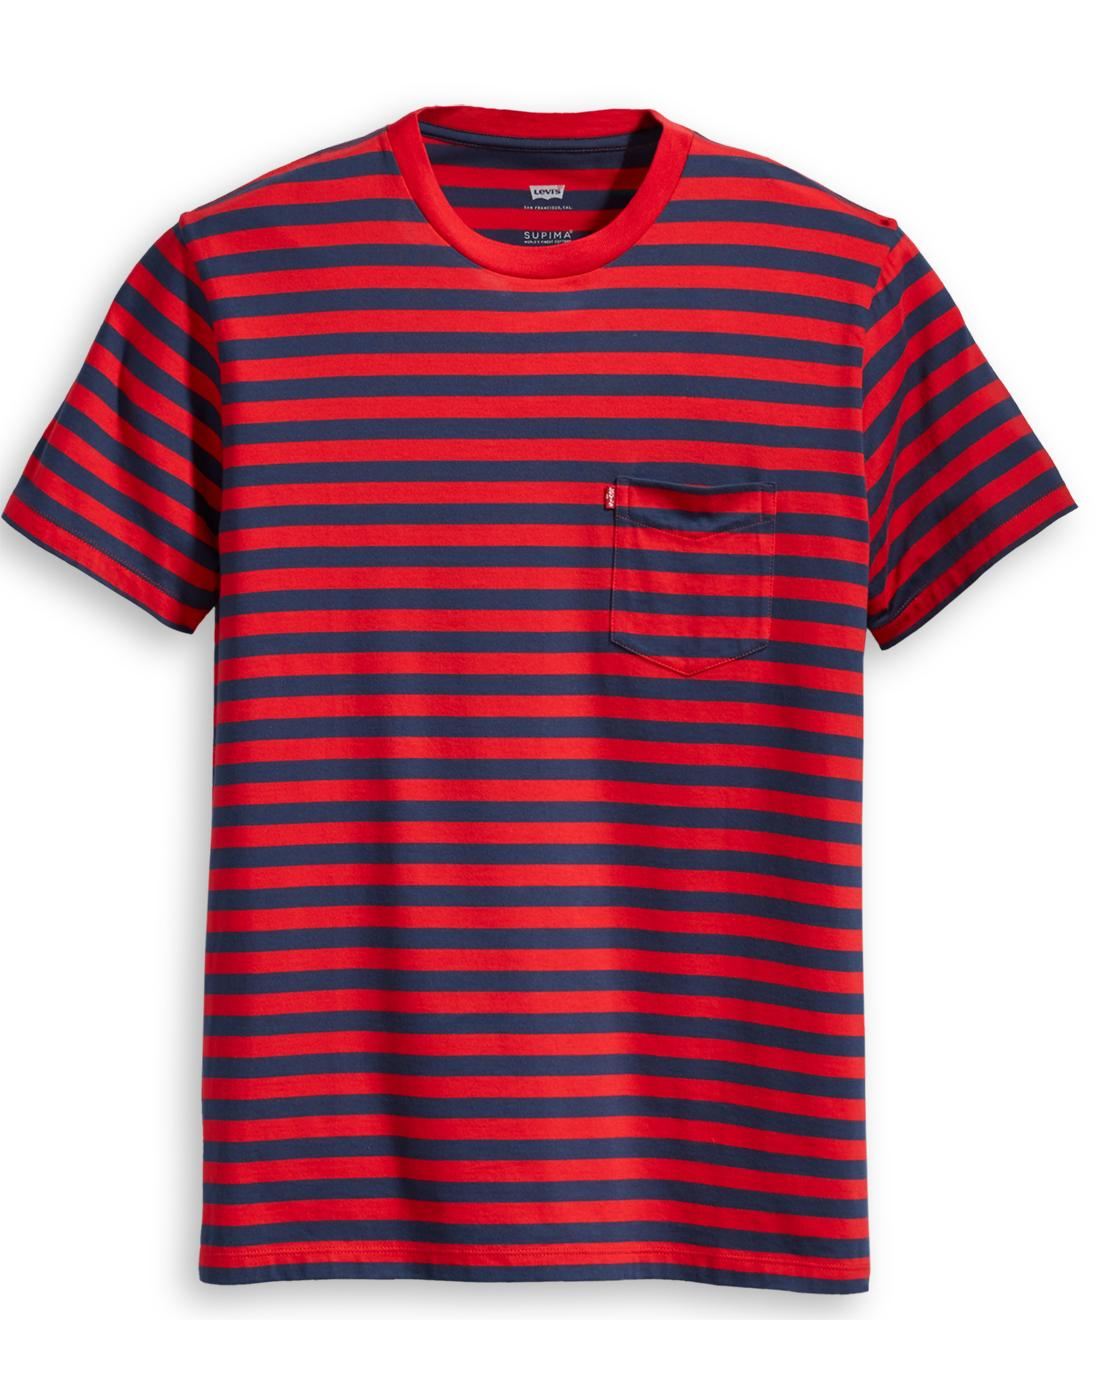 LEVI'S Retro Mod Stripe Sunset Pocket T-shirt R/N